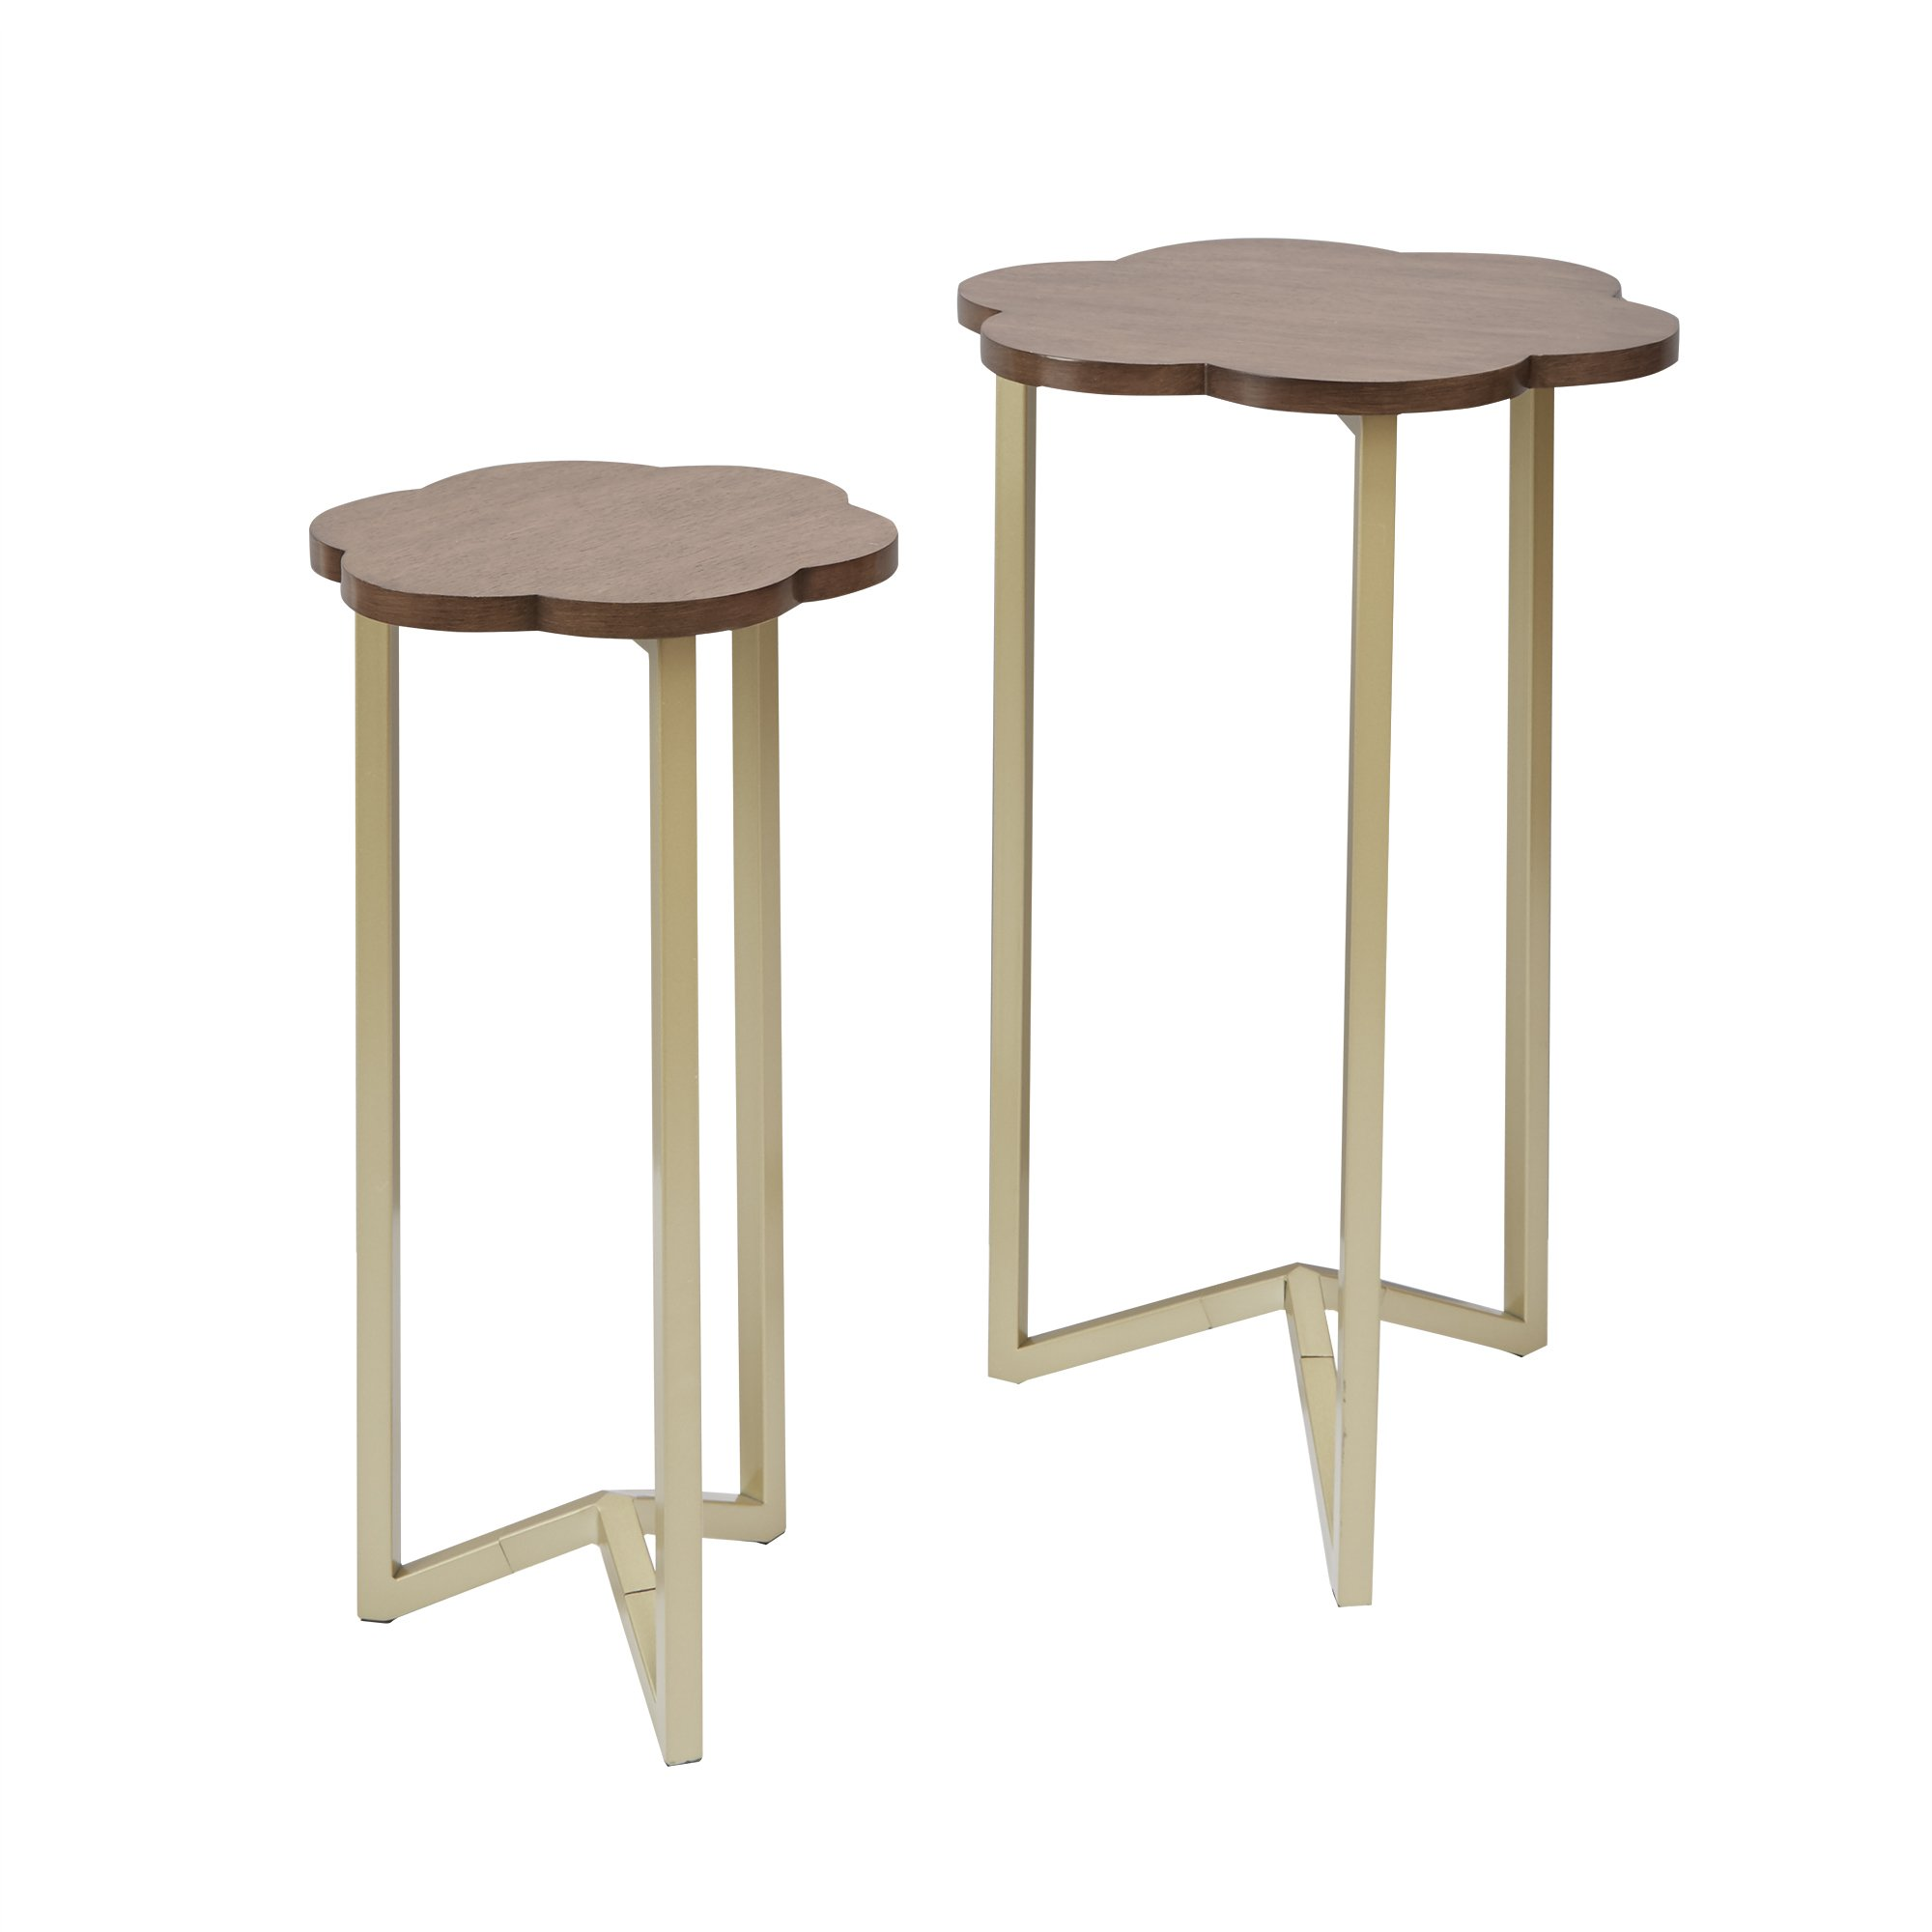 Silverwood FT1263-GLD-RGR Daphne Nesting Accent Tables (2pc), 17'' DIA x 27'' H by Silverwood (Image #3)